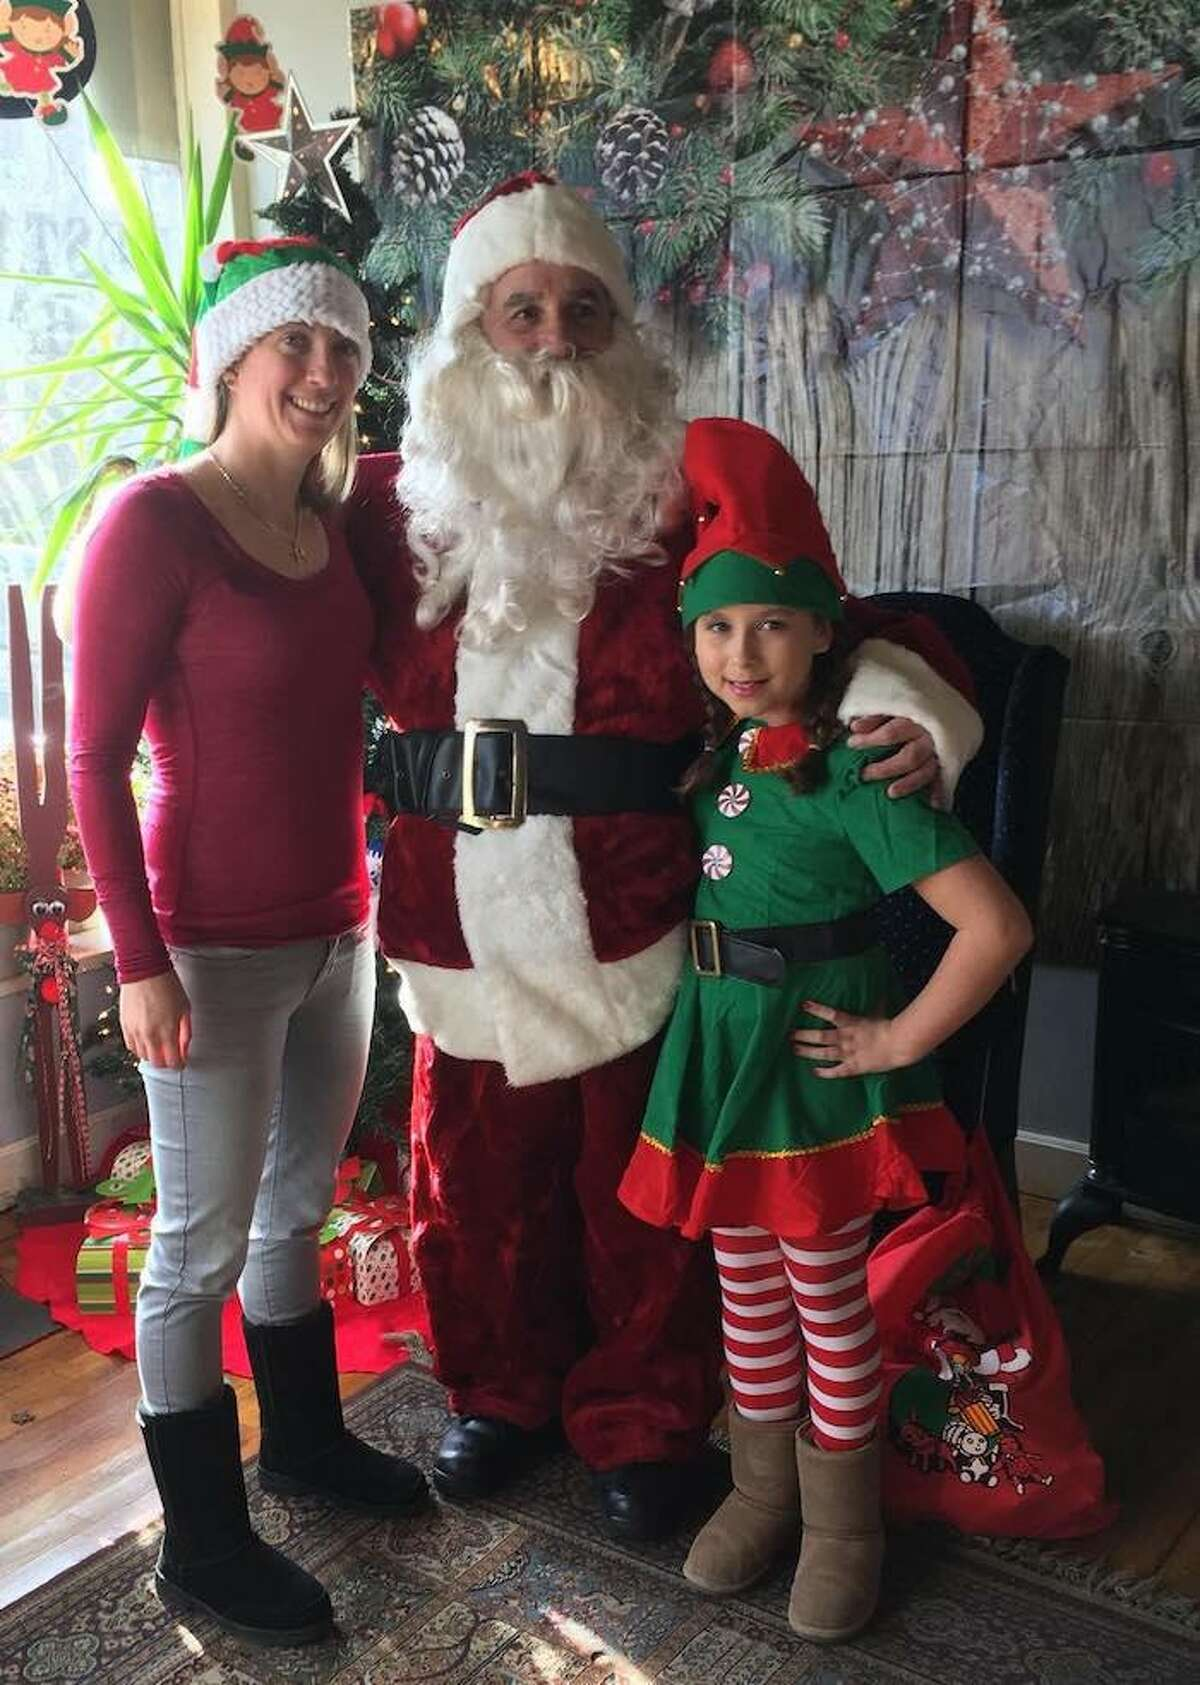 Christmas in Winsted, a town-wide celebration, will be held Dec. 7. Pictured are scenes from the 2018 events.